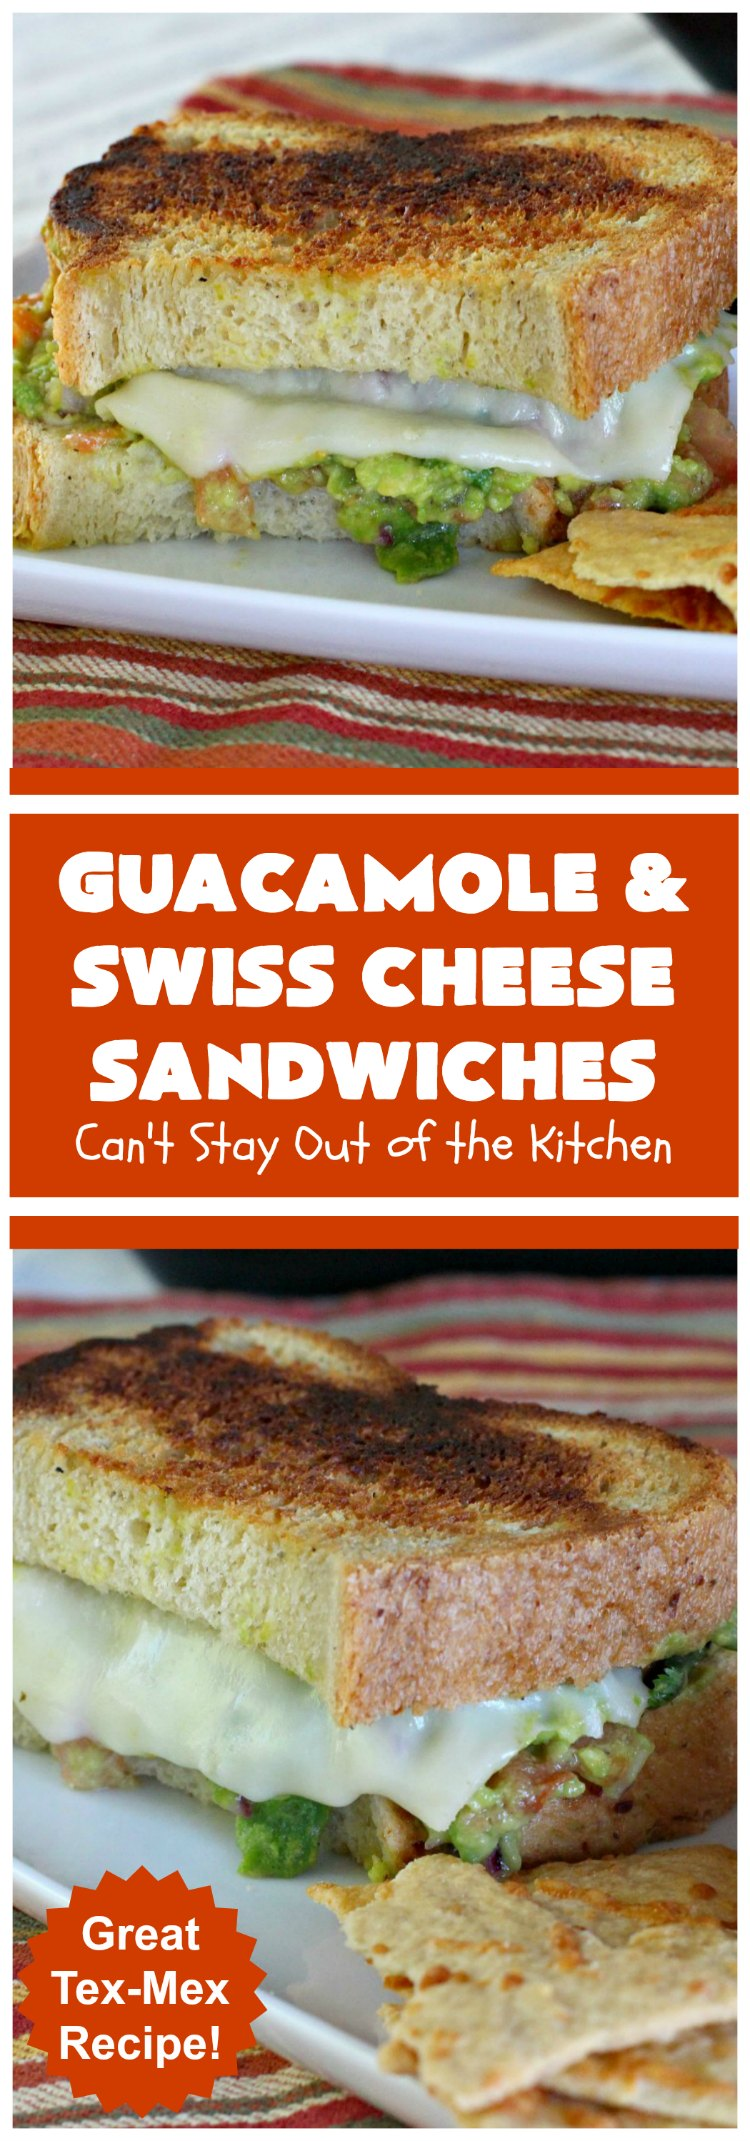 Guacamole and Swiss Cheese Sandwiches | Can't Stay Out of the Kitchen | the best of both worlds! #Guacamole plus #GrilledCheese! These #sandwiches are fantastic. Terrific for #tailgating parties or any time you want a quick lunch or supper. #avocados #SwissCheese #GuacamoleAndSwissCheeseSandwiches